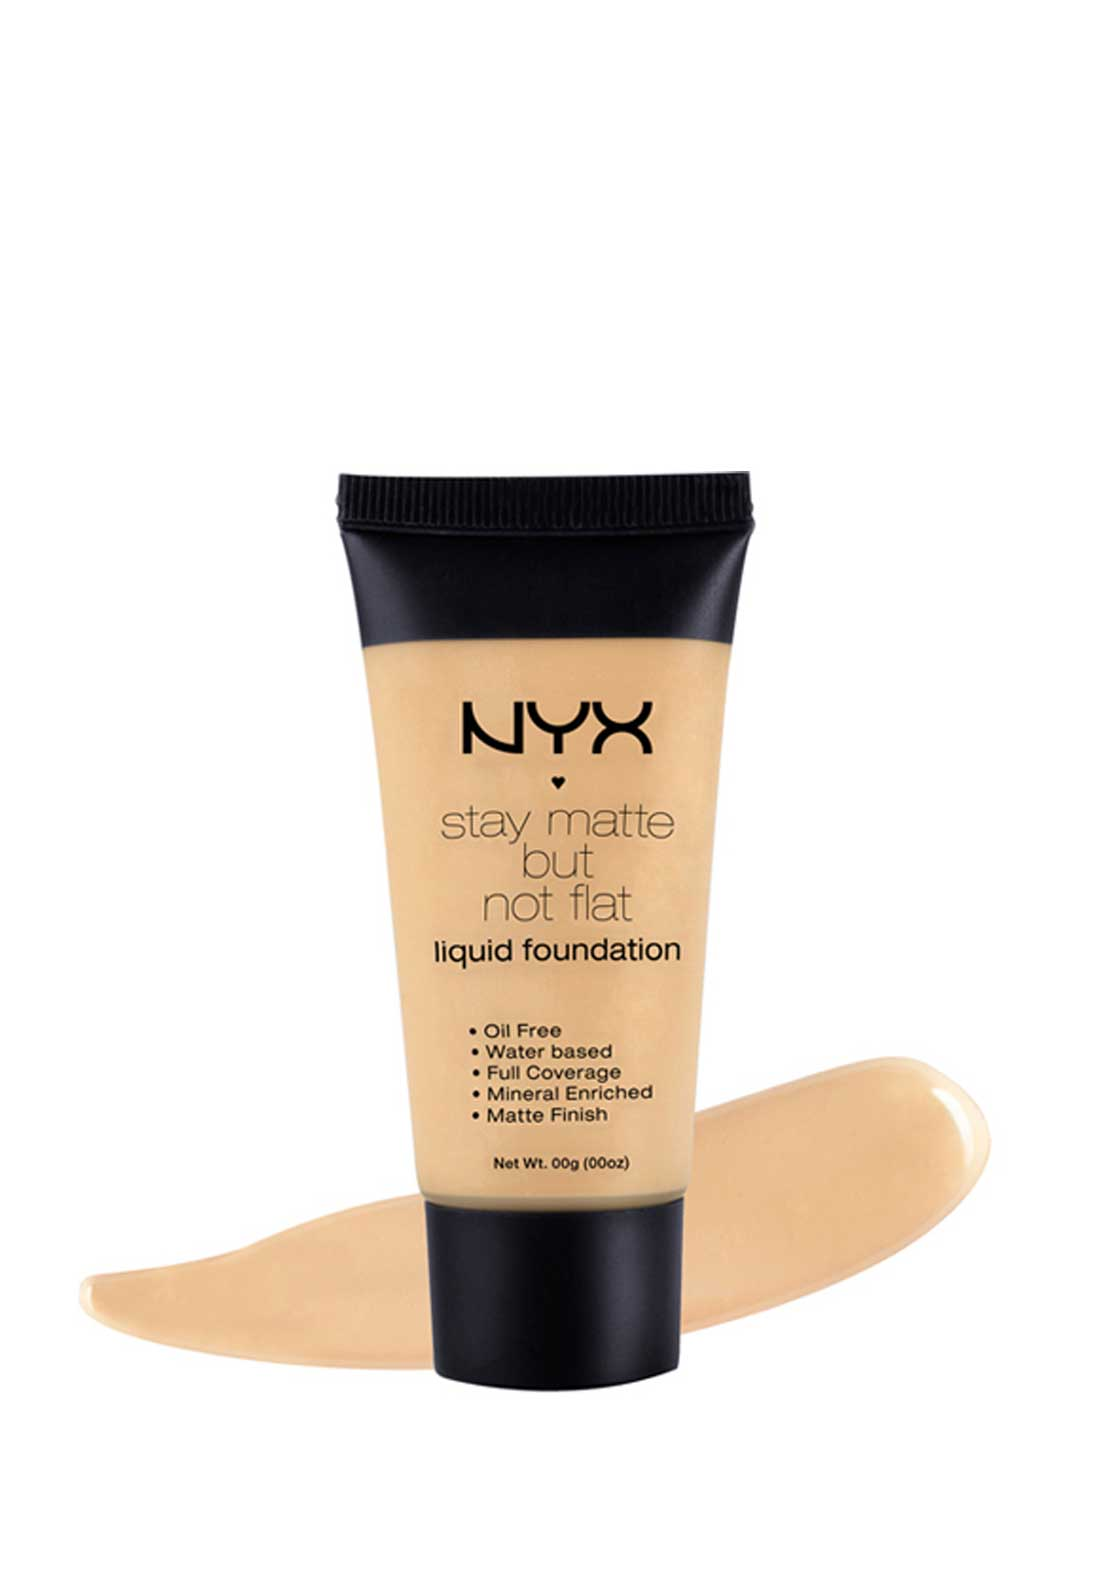 NYX Make Up Stay Matte but not flat Foundation - 01 Ivory